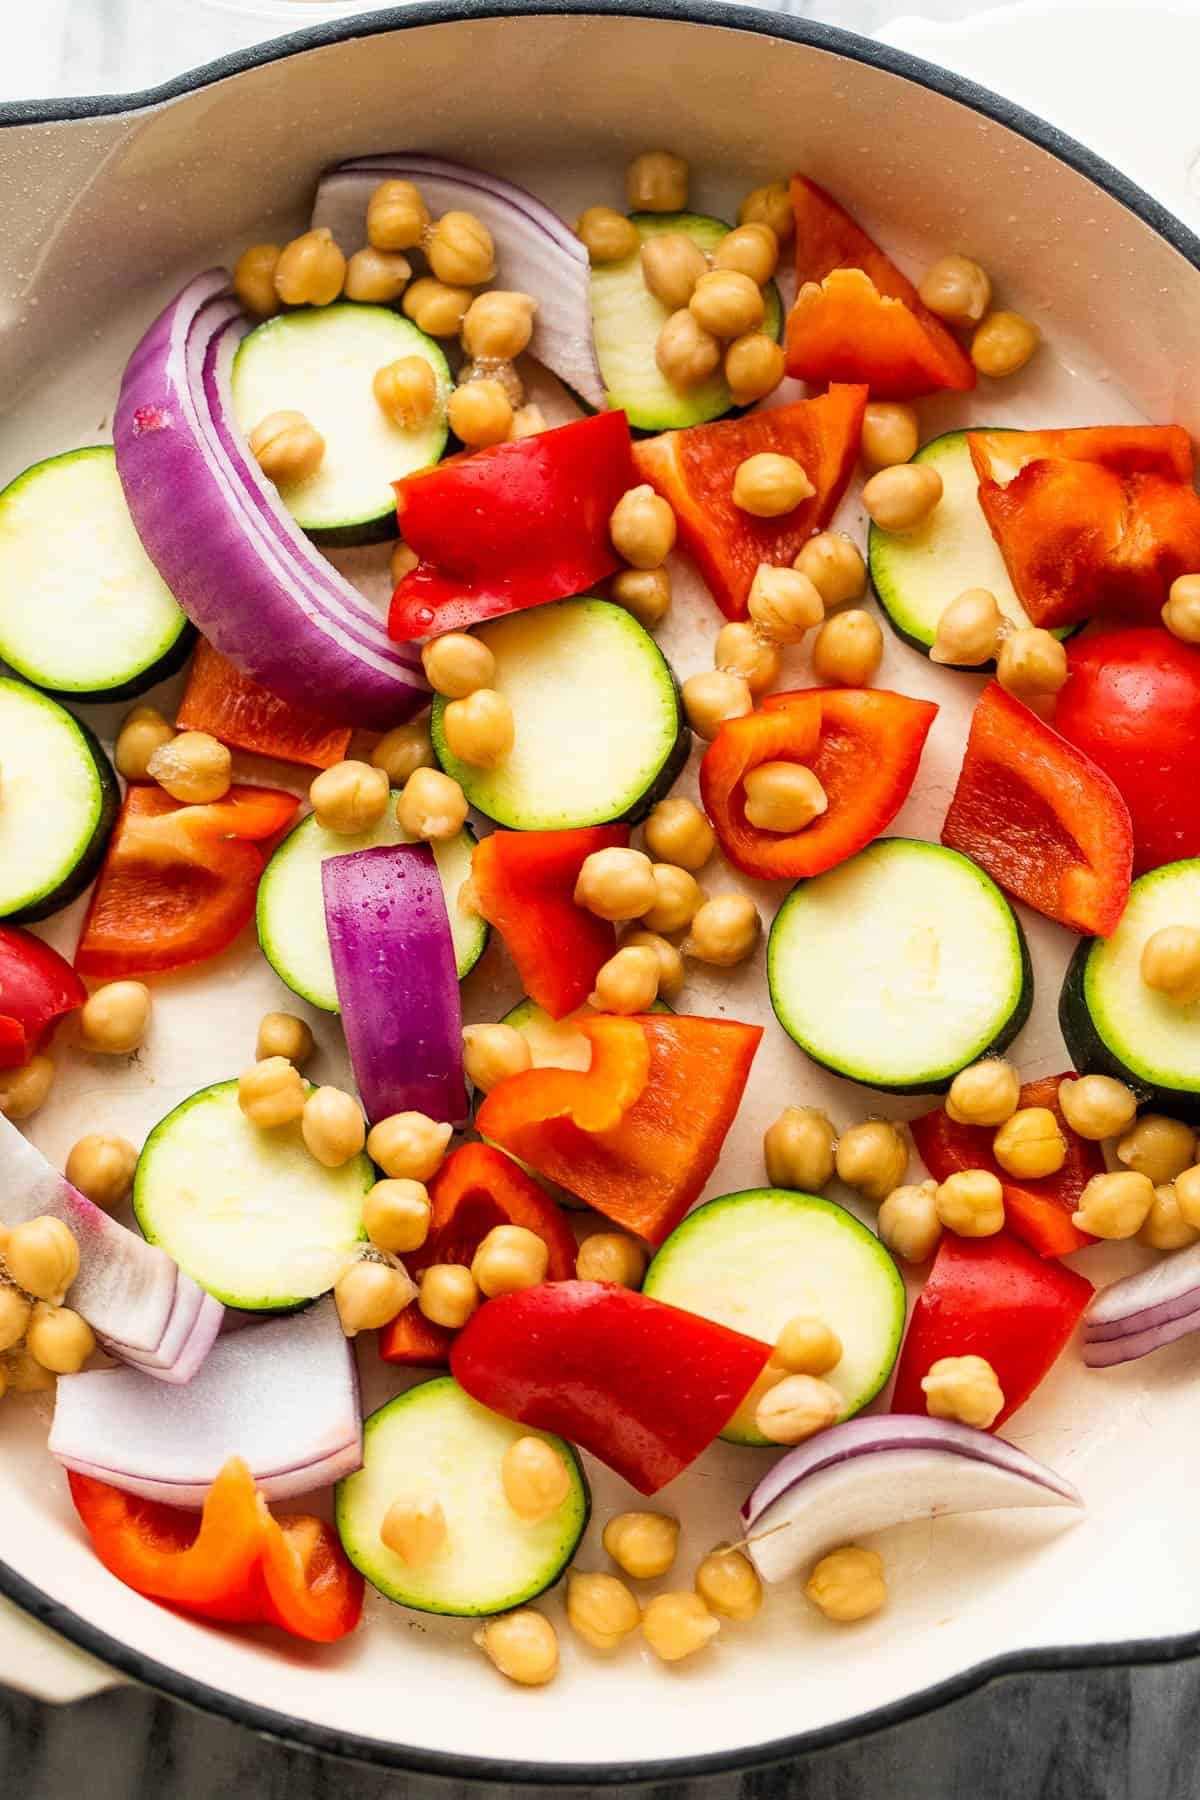 arranged zucchini slices, chickpeas, red bell pepper, and red onions in a white skillet